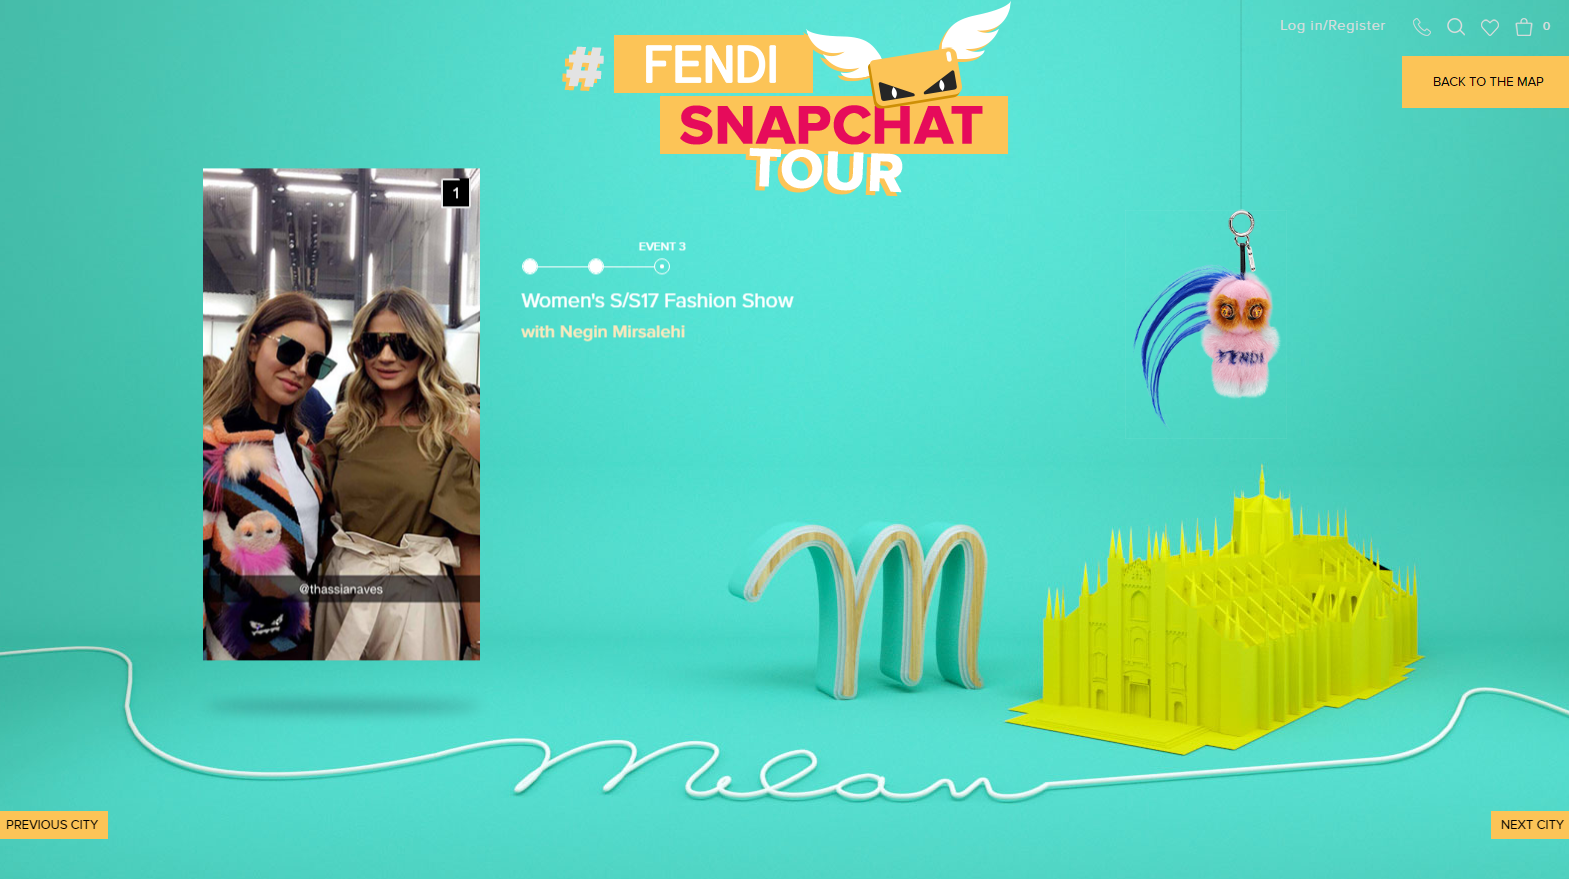 A screenshot of Fendi's Milan takeover with Negin Mirsalehi.